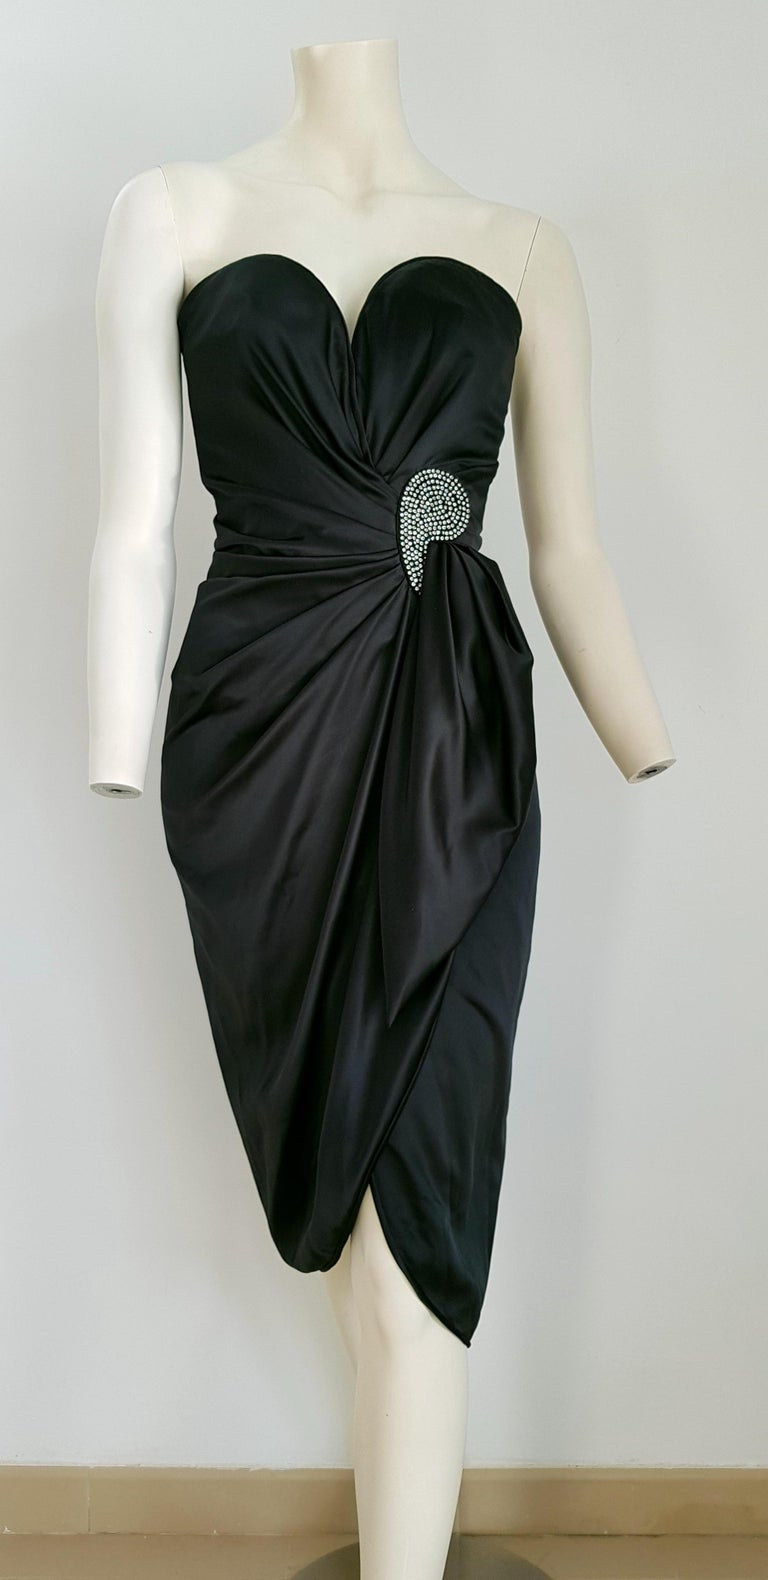 VALENTINO Haute Couture, swarovski diamonds drop in front, silk satin anthracite gown - Unworn, New  SIZE: equivalent to about Small / Medium, please review approx measurements as follows in cm: lenght 99, chest underarm to underarm 50, bust